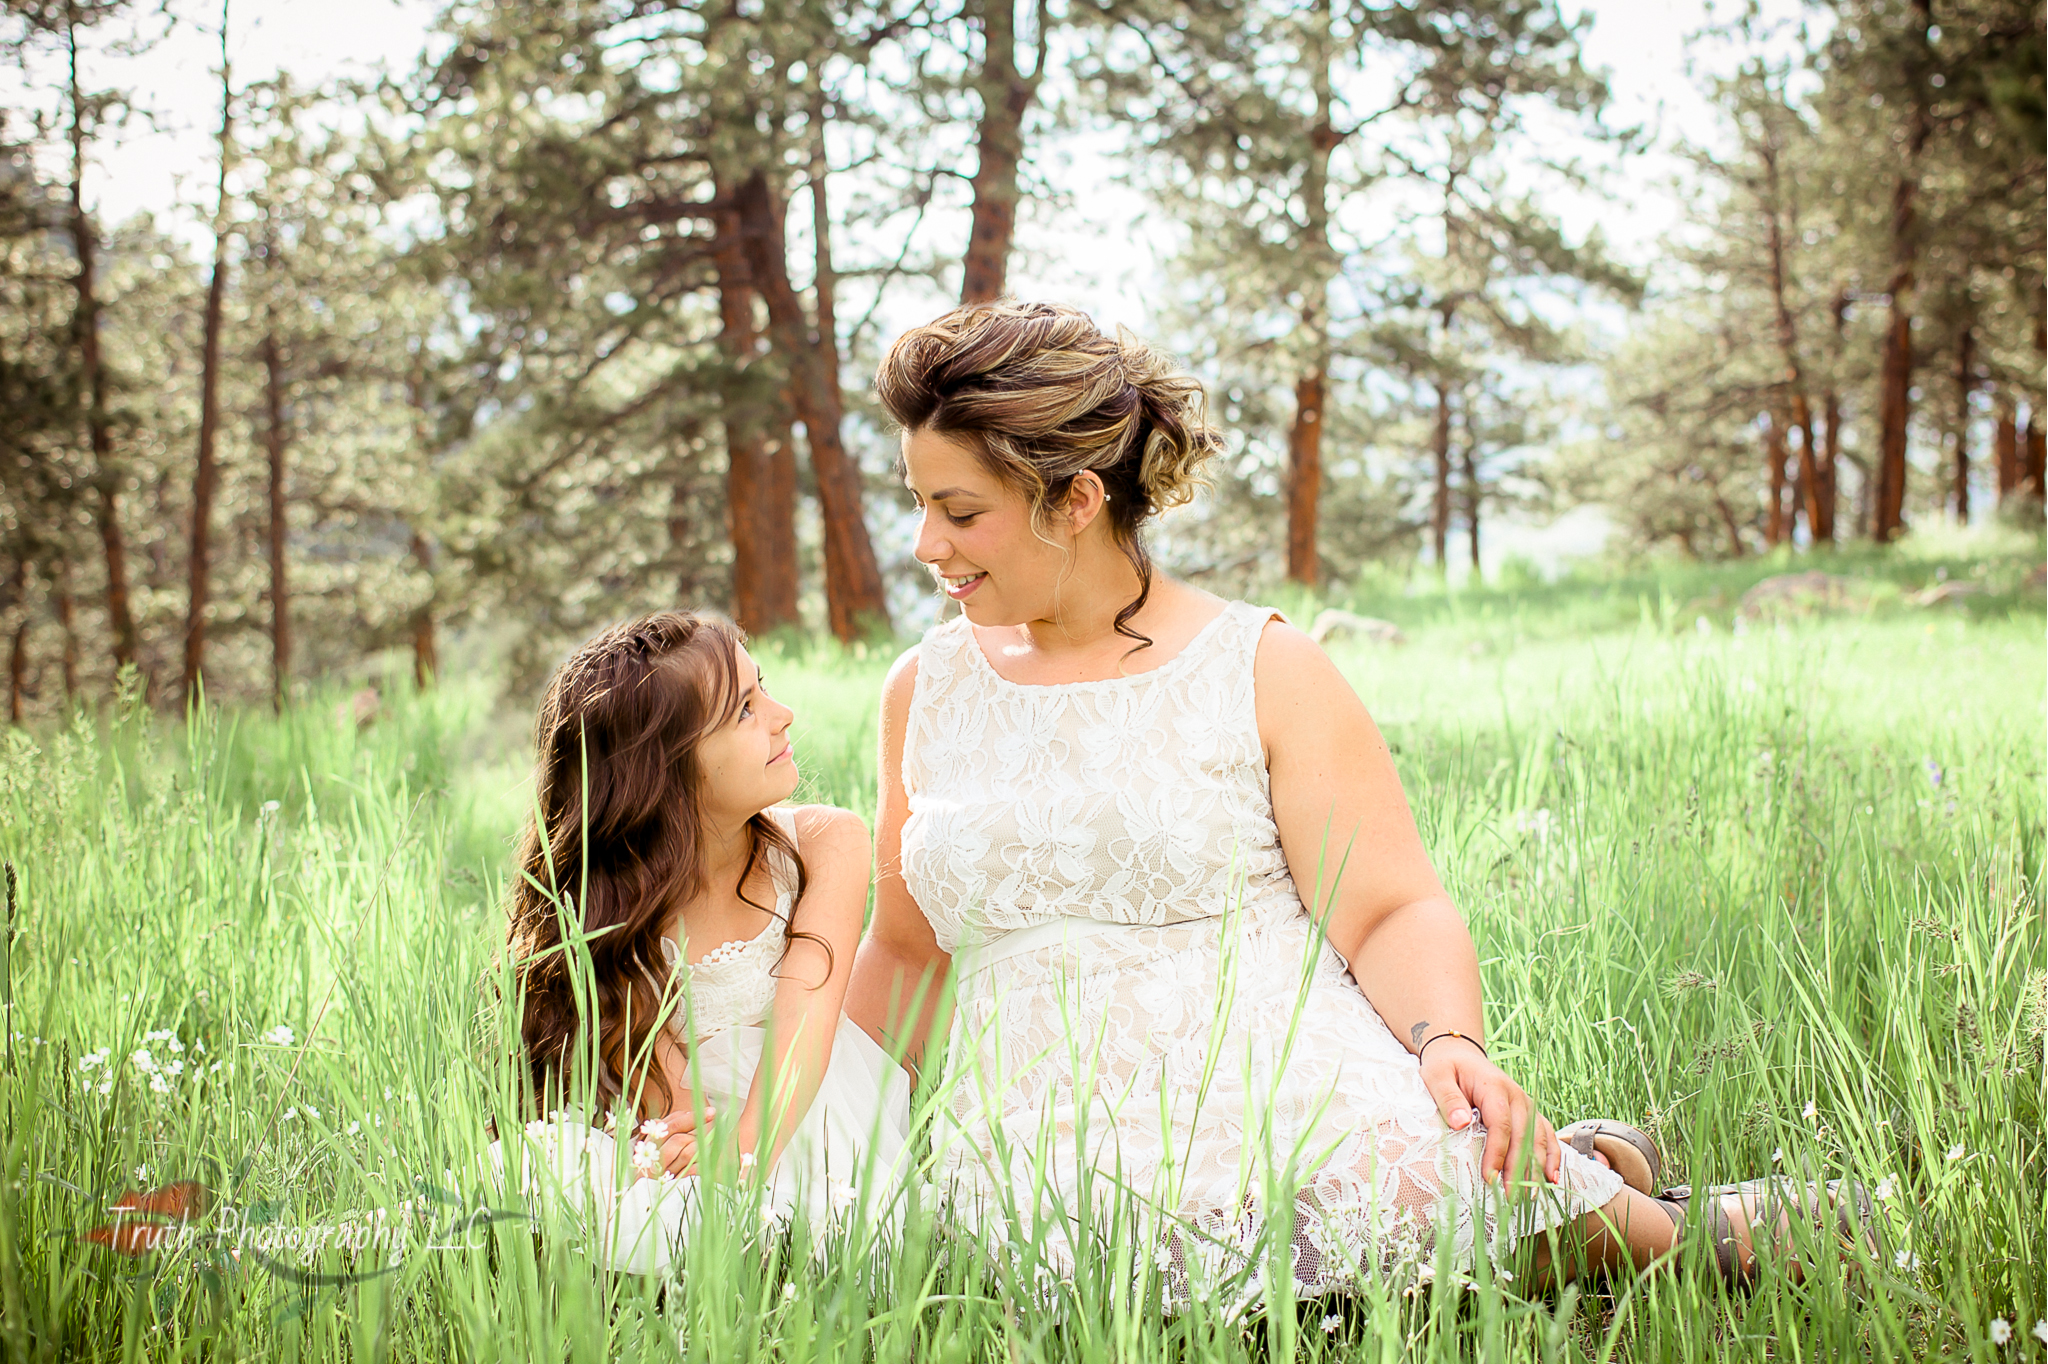 Lookout mountain, Golden Colorado mommy and me photo